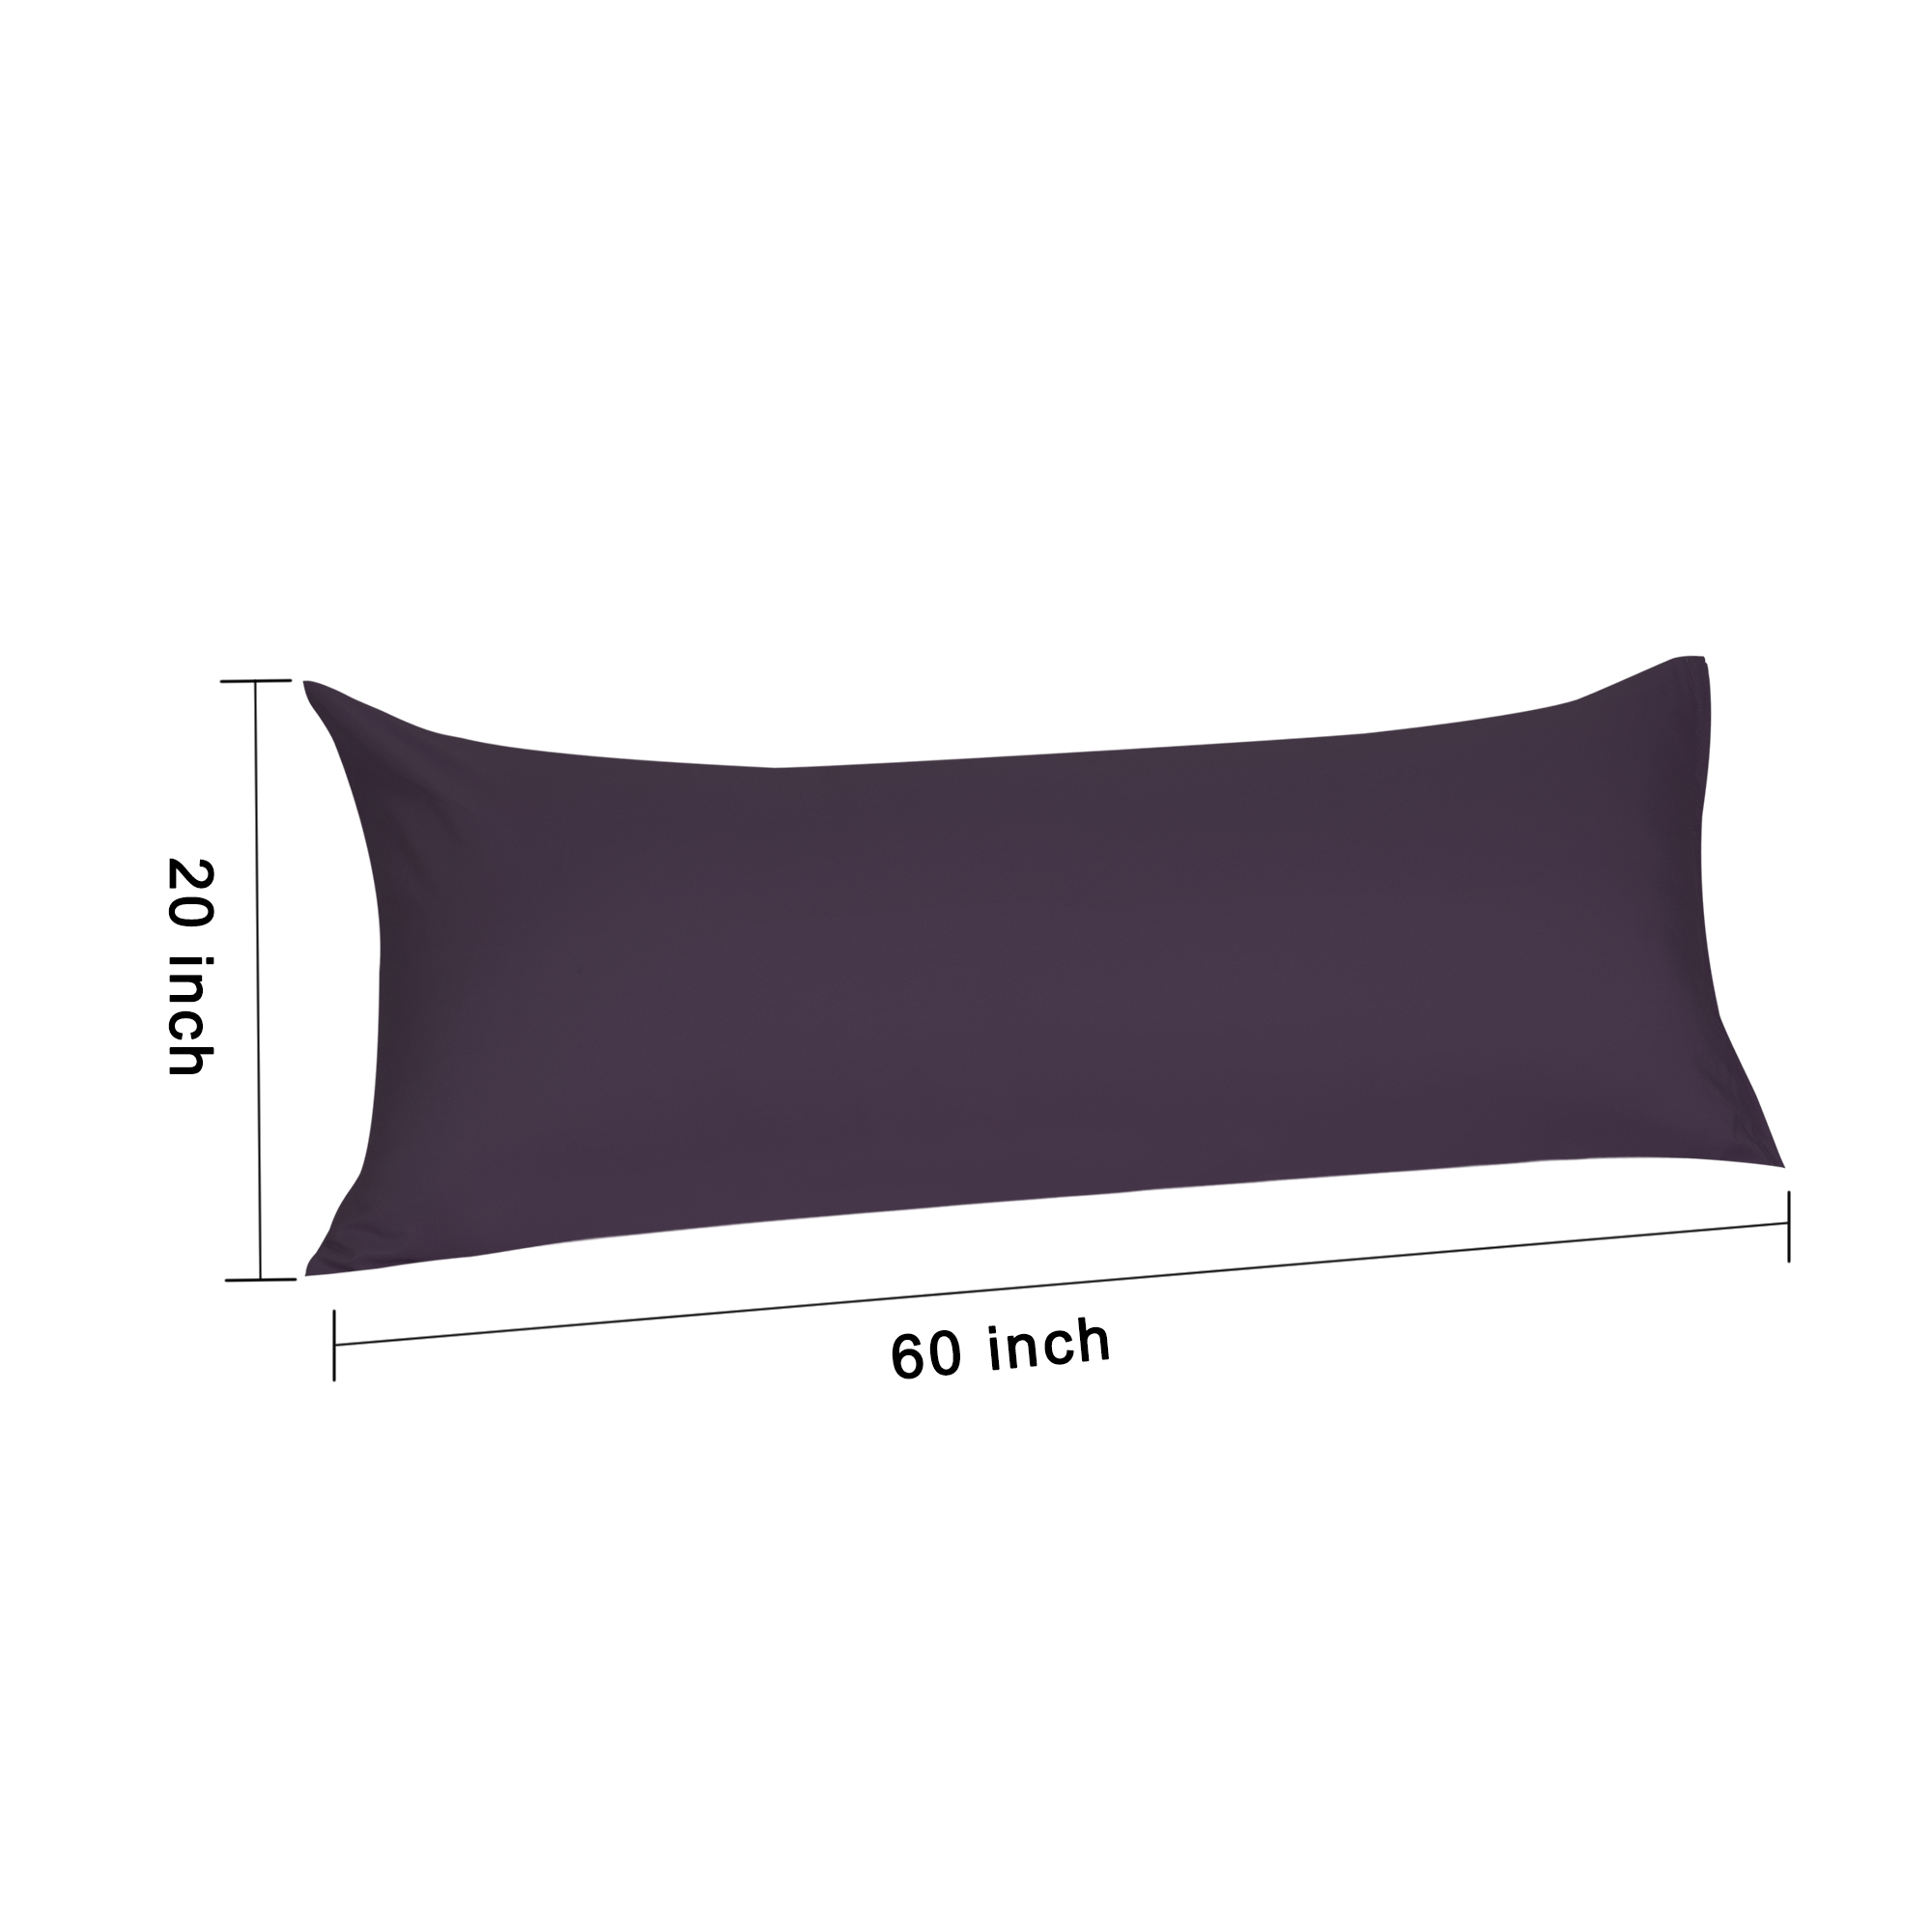 Zippered Body Pillow Case Cover Soft Microfiber Long Pillowcases Eggplant 20x60 - image 6 of 8